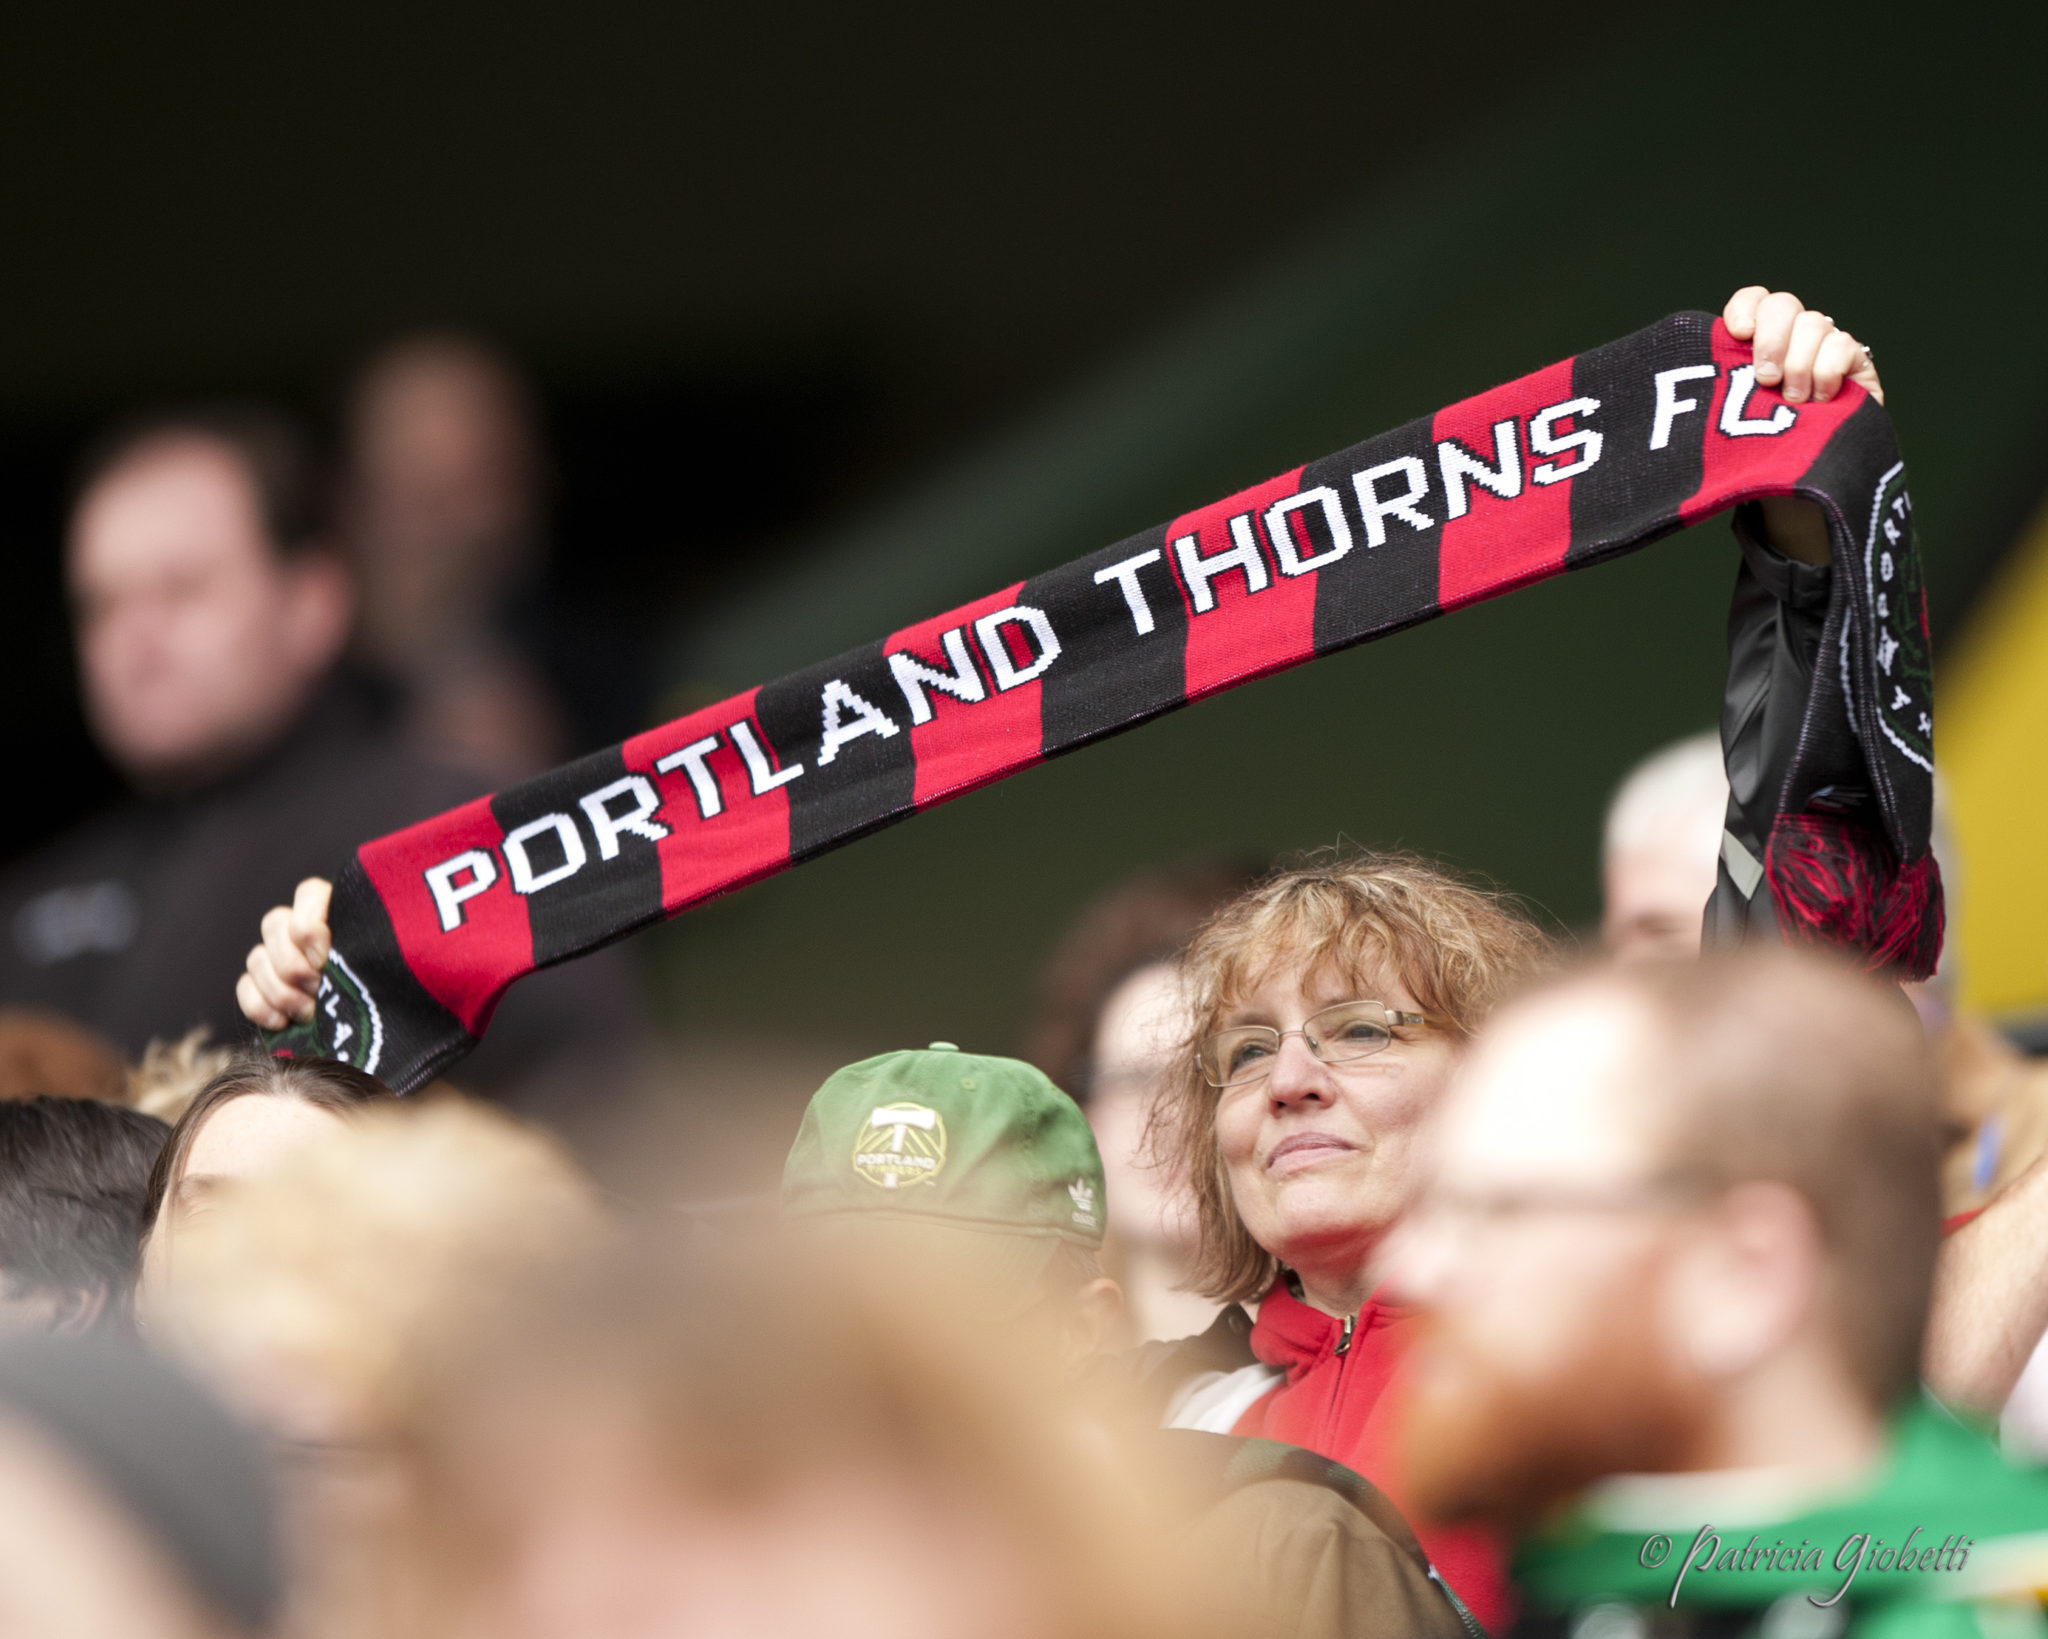 Portland Thorns FC fan